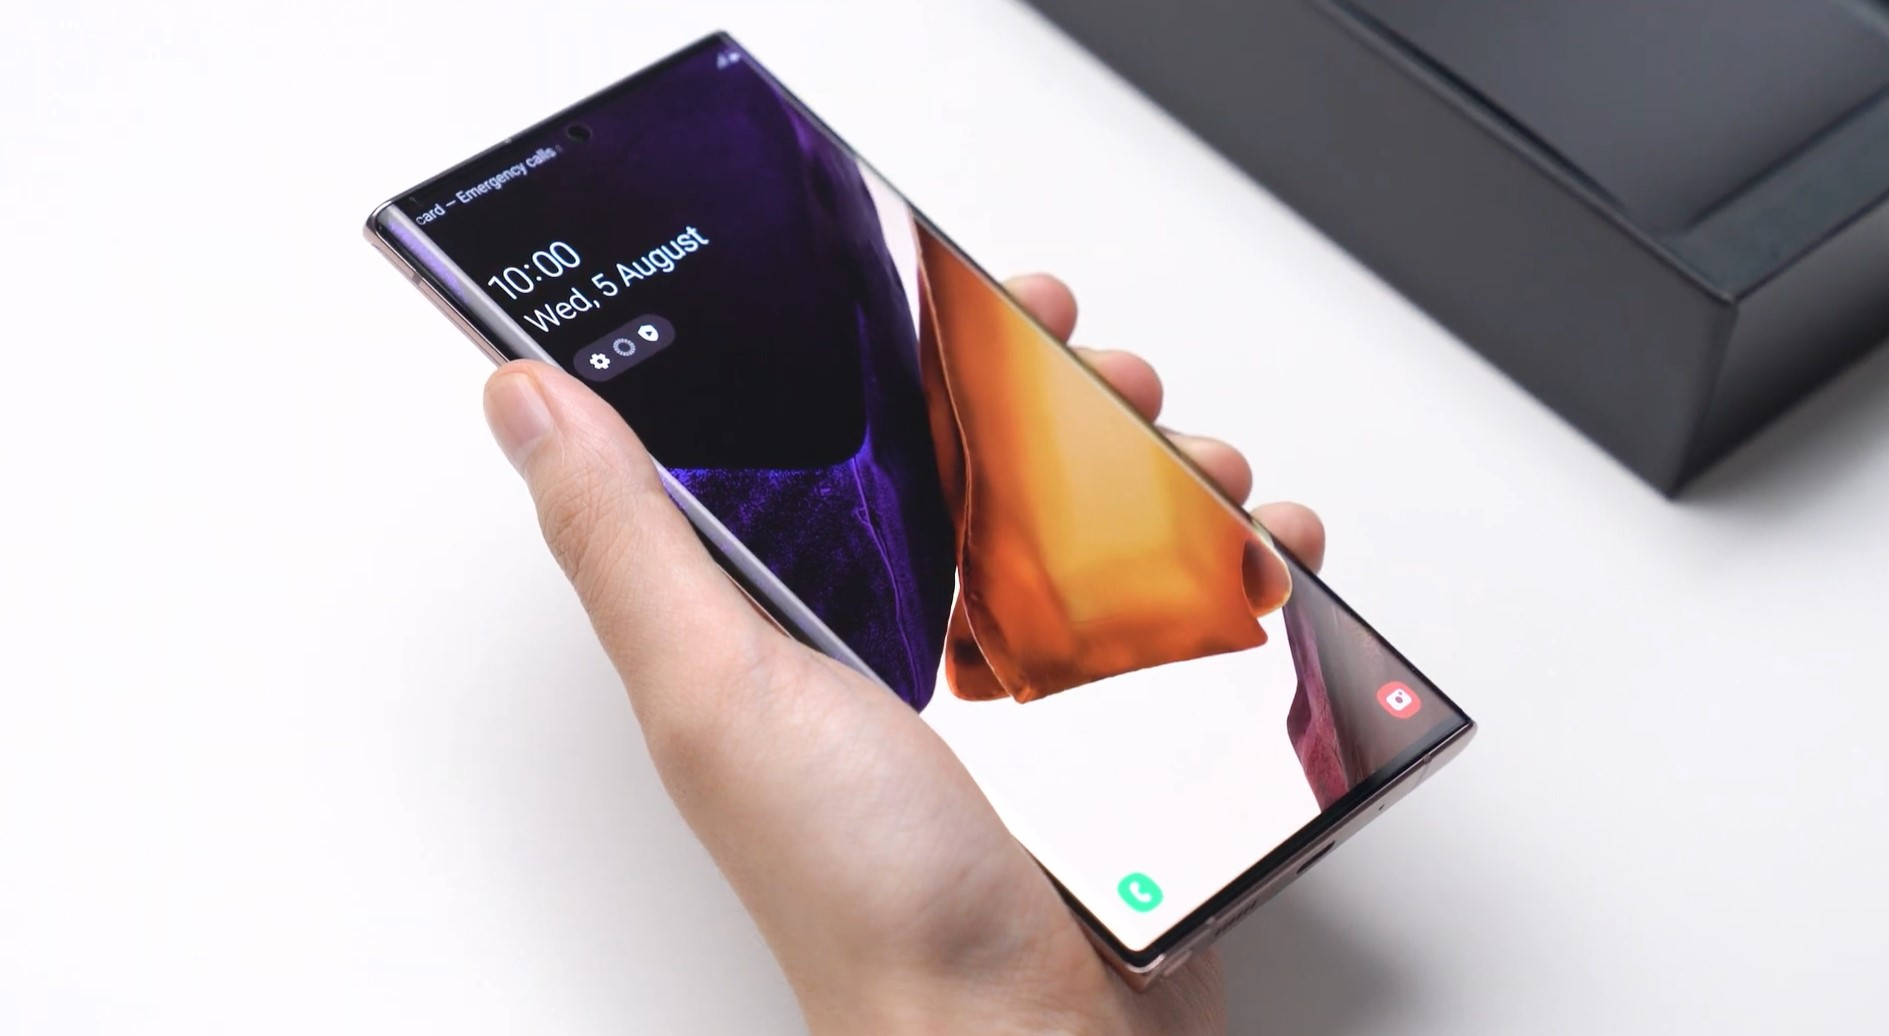 One UI 2.5 Launcher APK from Galaxy Note20 Ultra